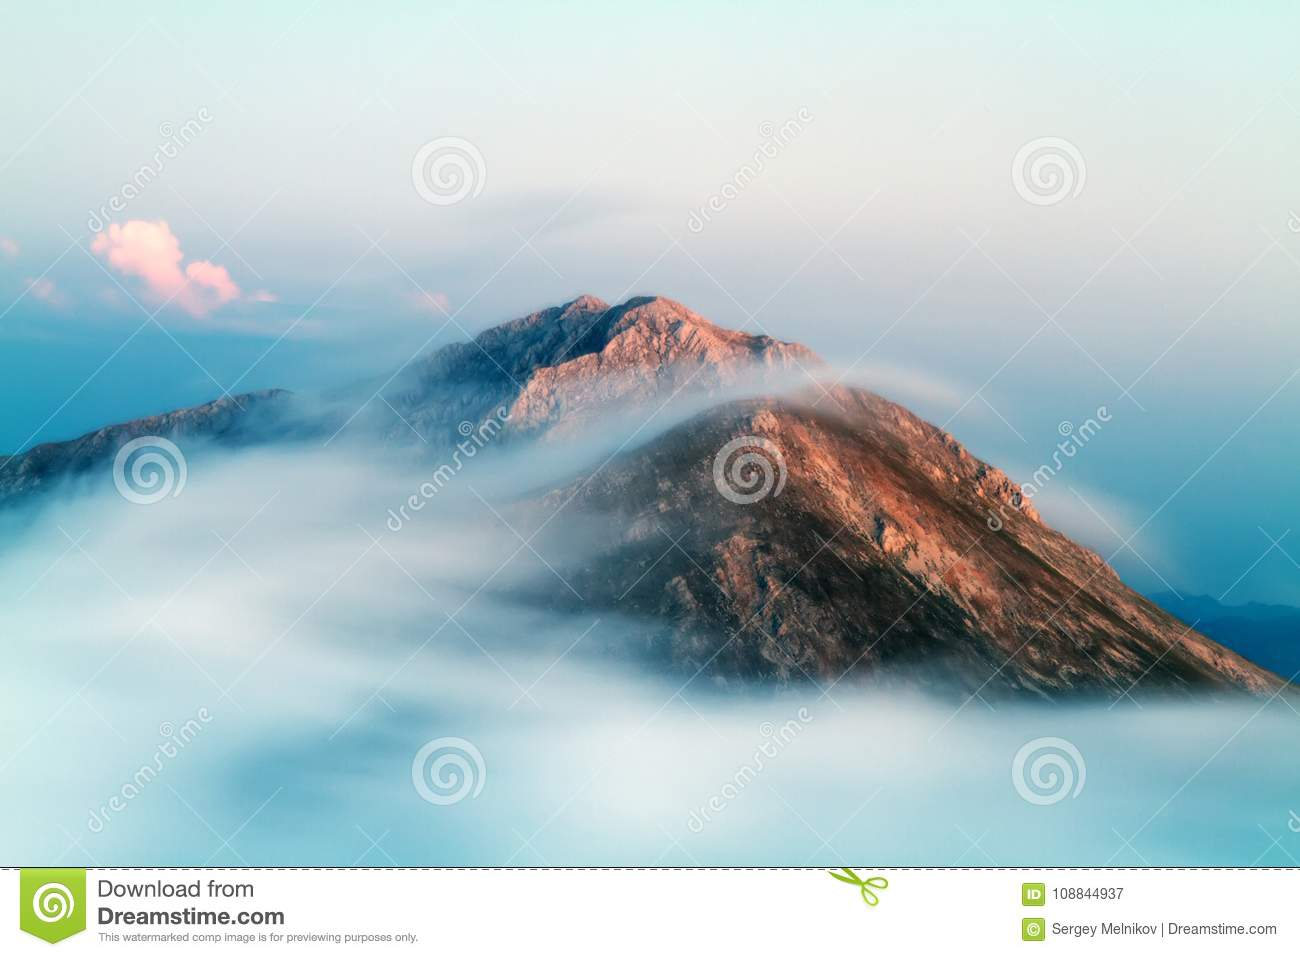 Formation and movement of clouds over mountains peaks.